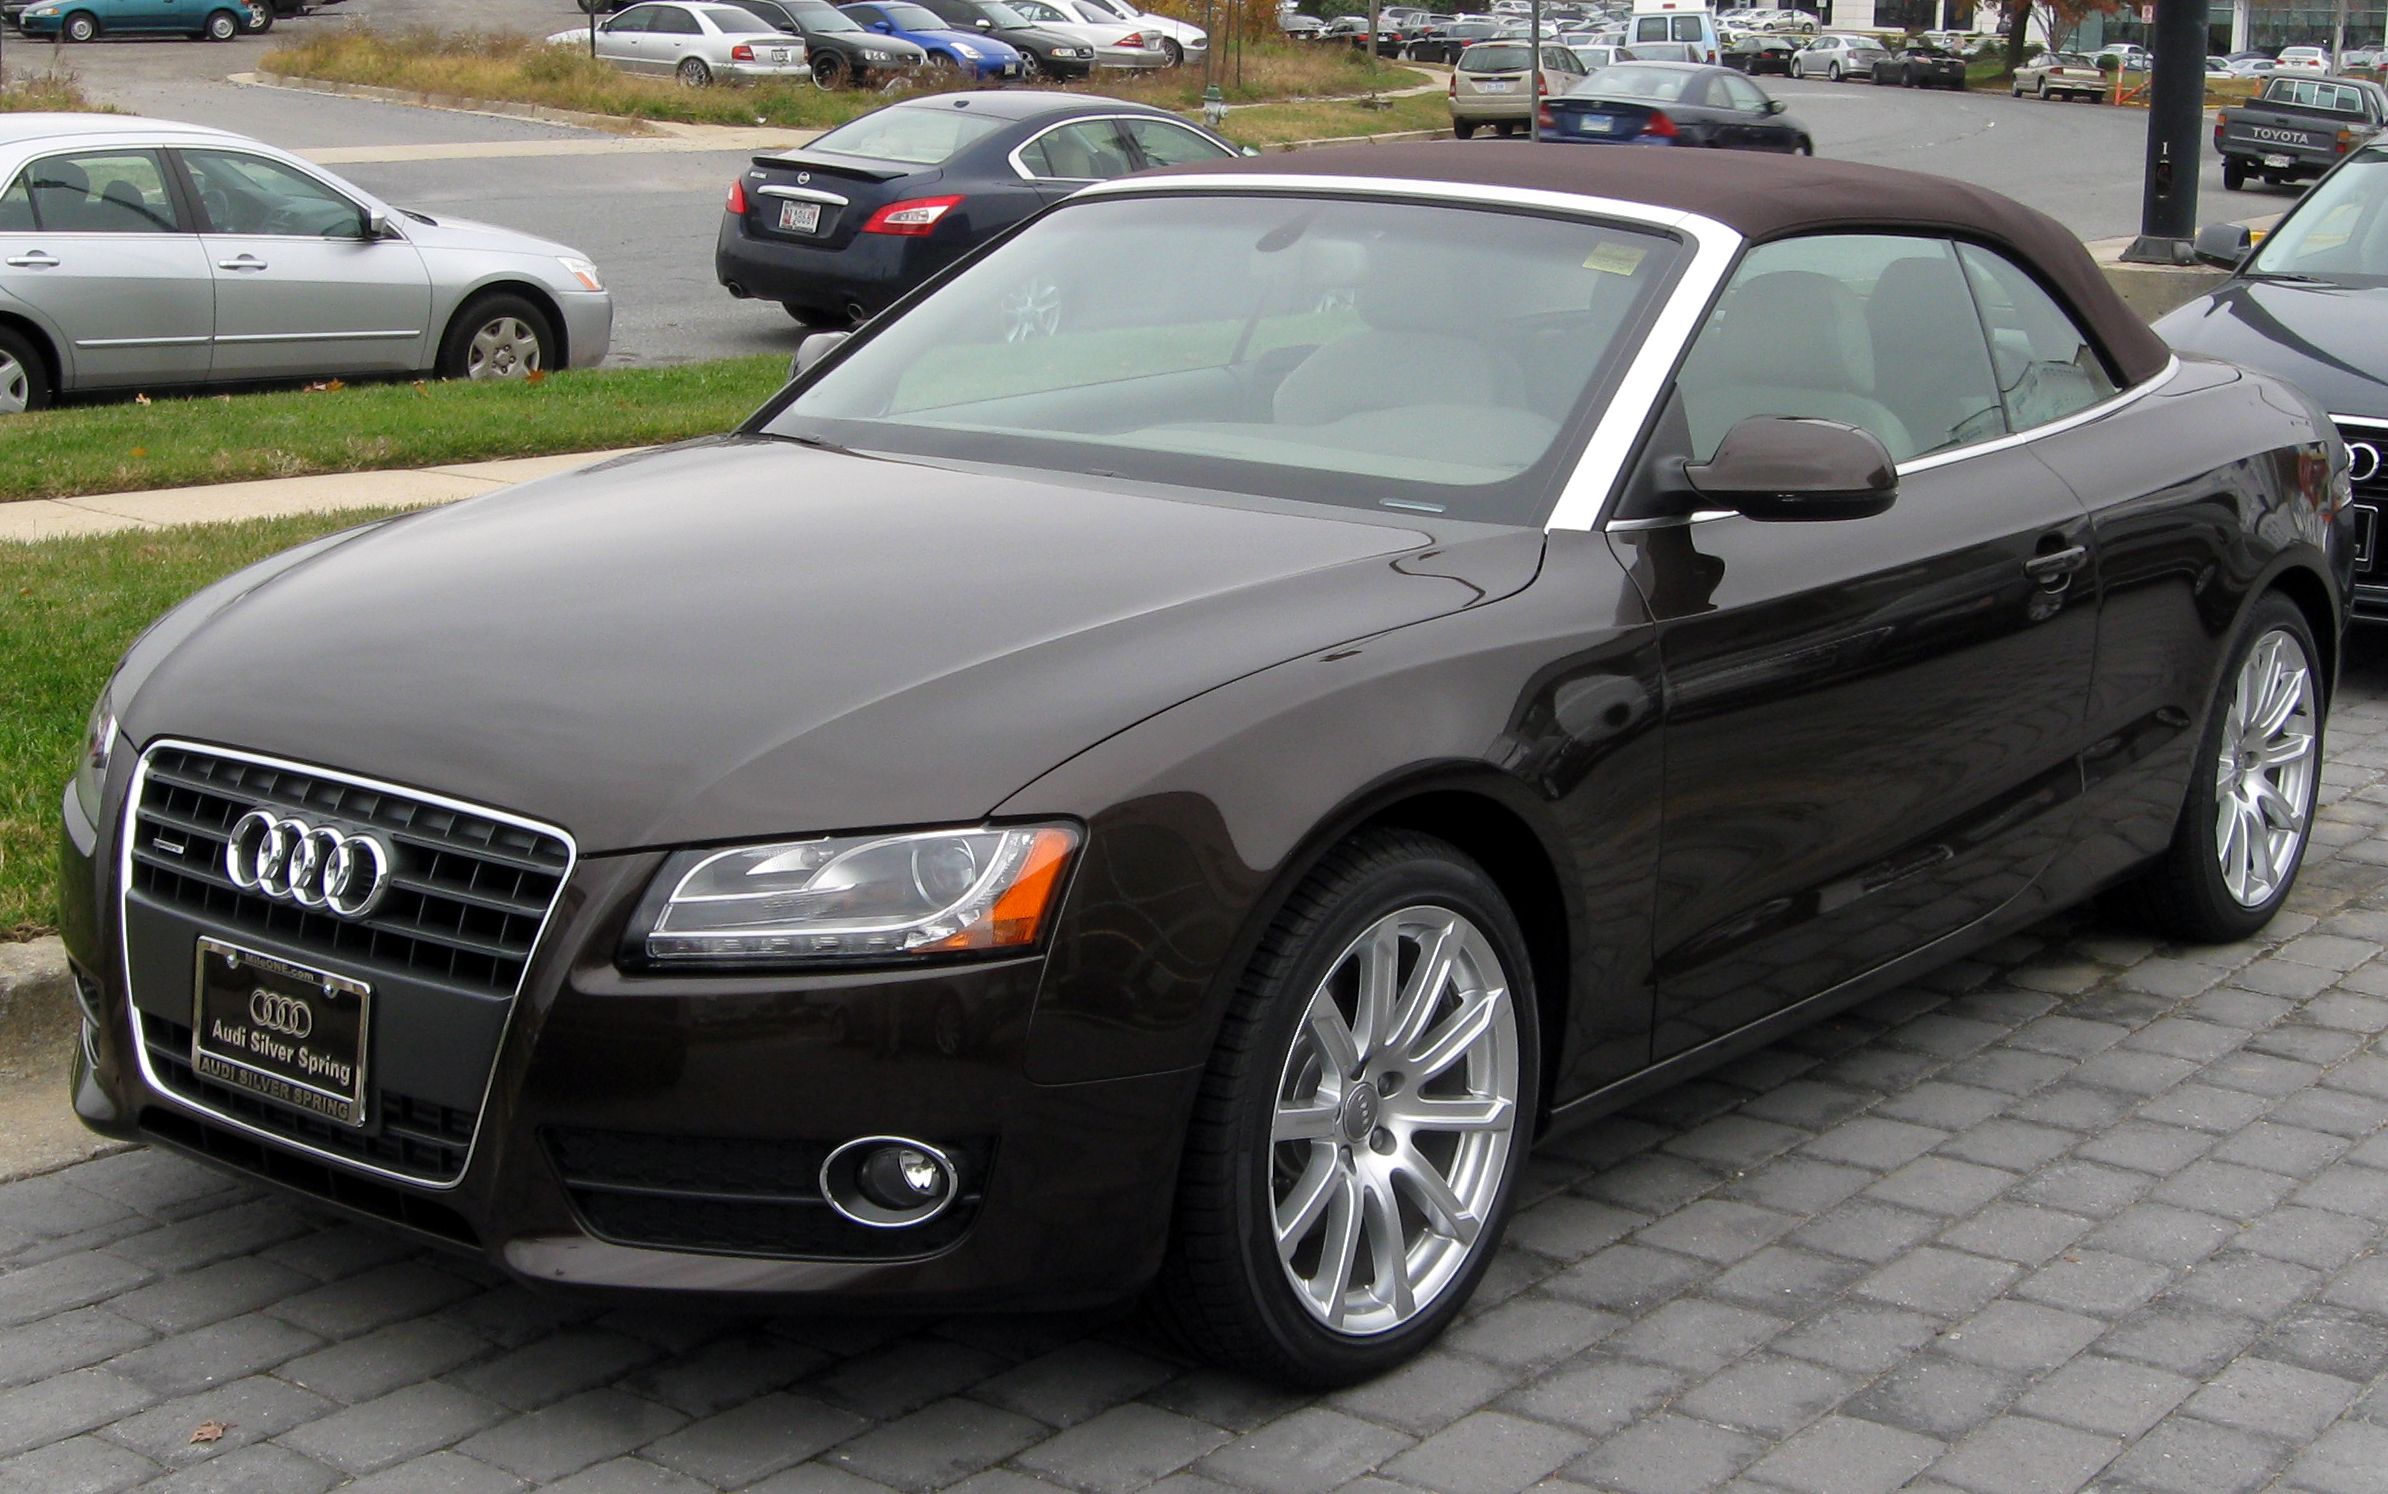 File 2012 Audi A5 Convertible 11 10 2011 Jpg Wikimedia Commons